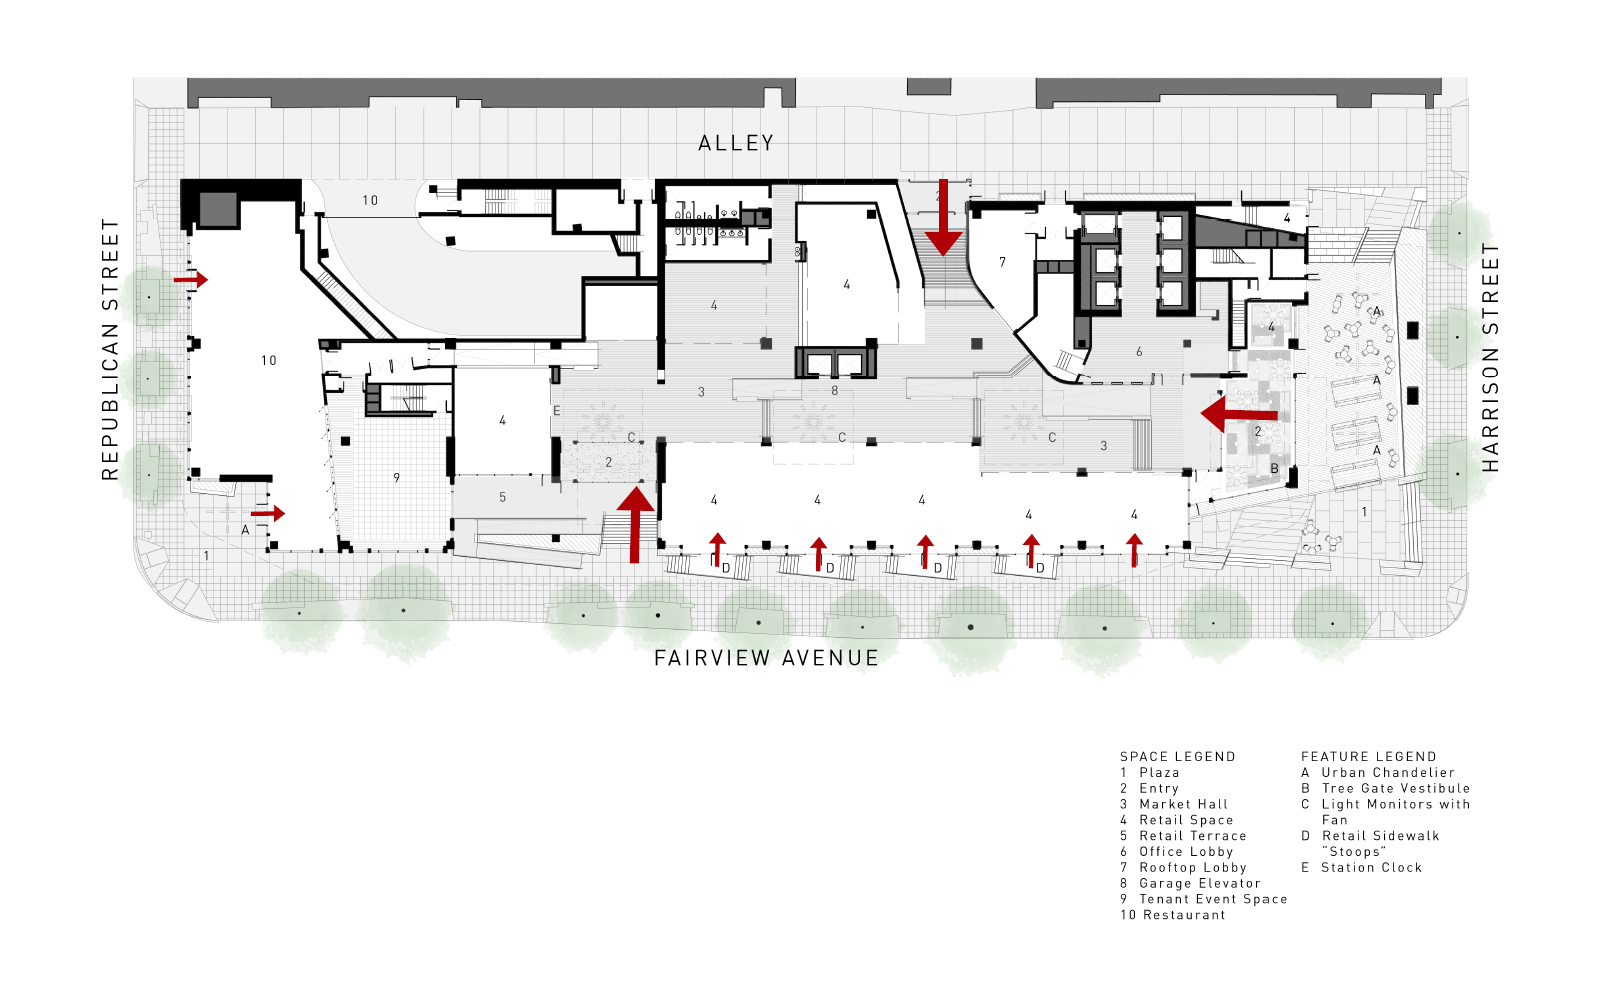 market hall plan with entry arrows.jpg